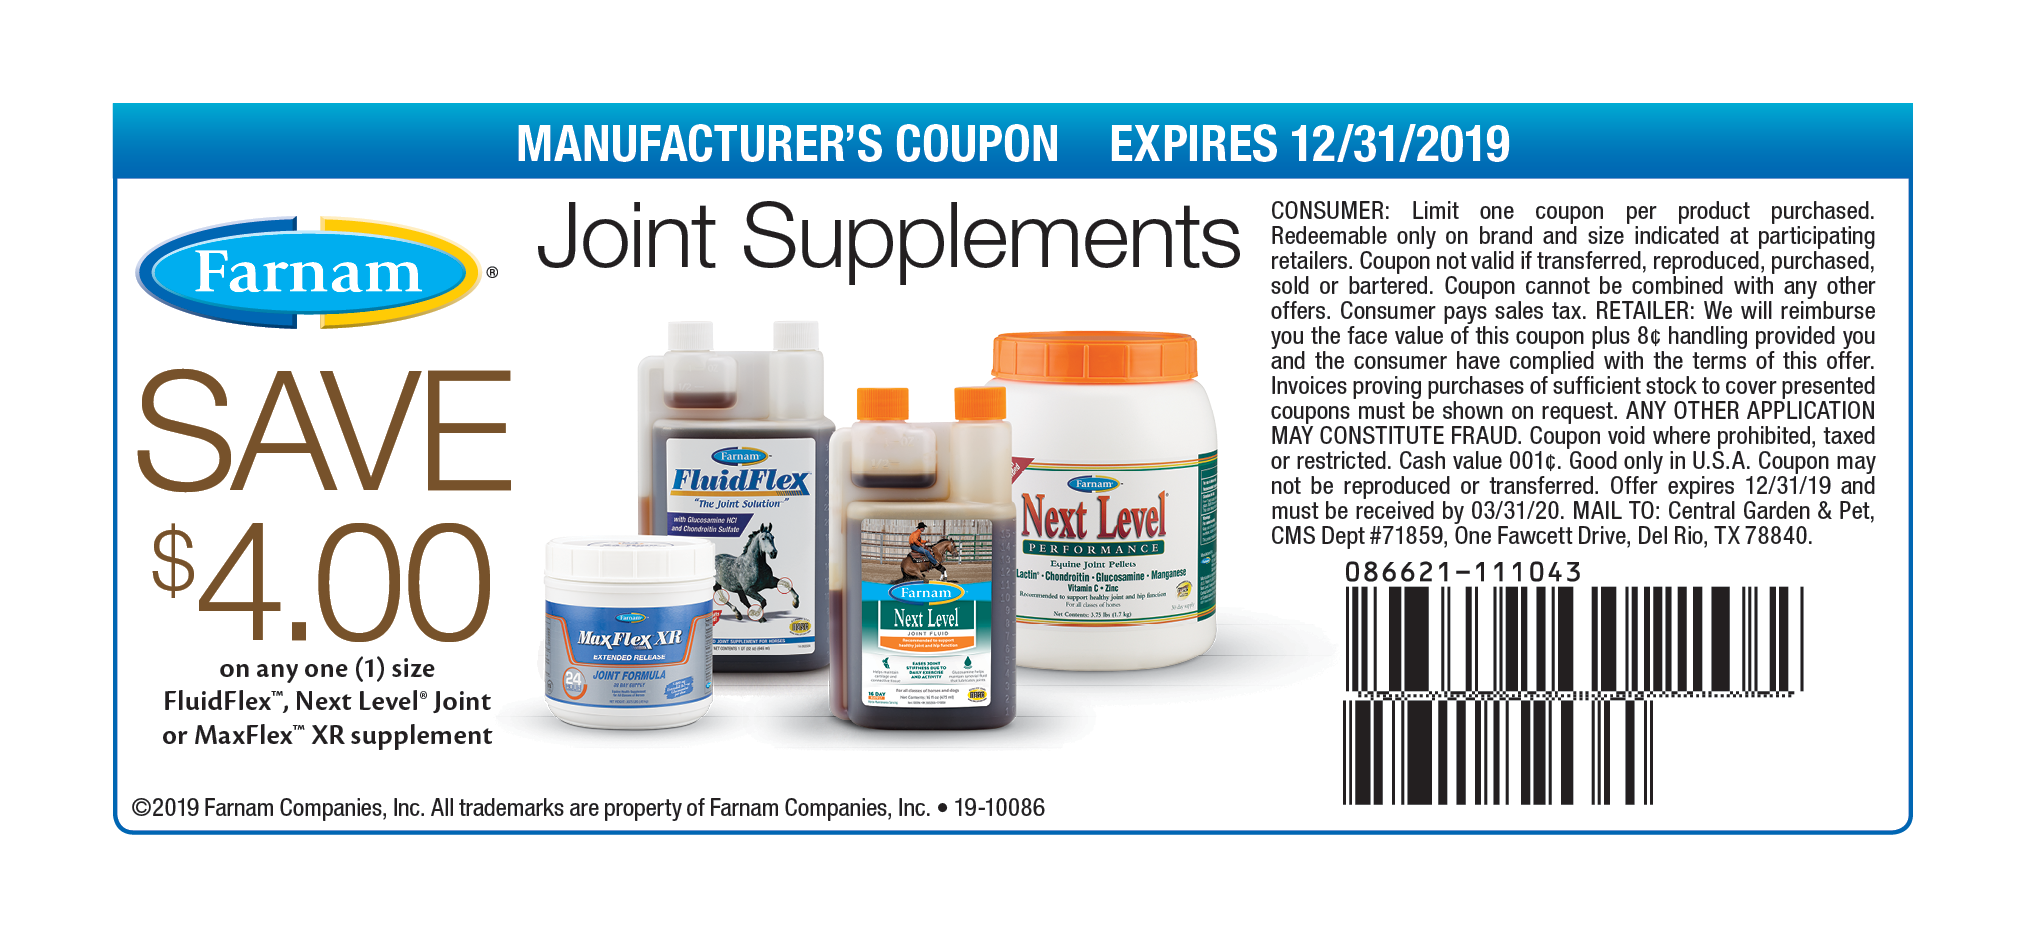 19-10086_FM_111043_JointSupplement_Save$4_DigitalCoupon